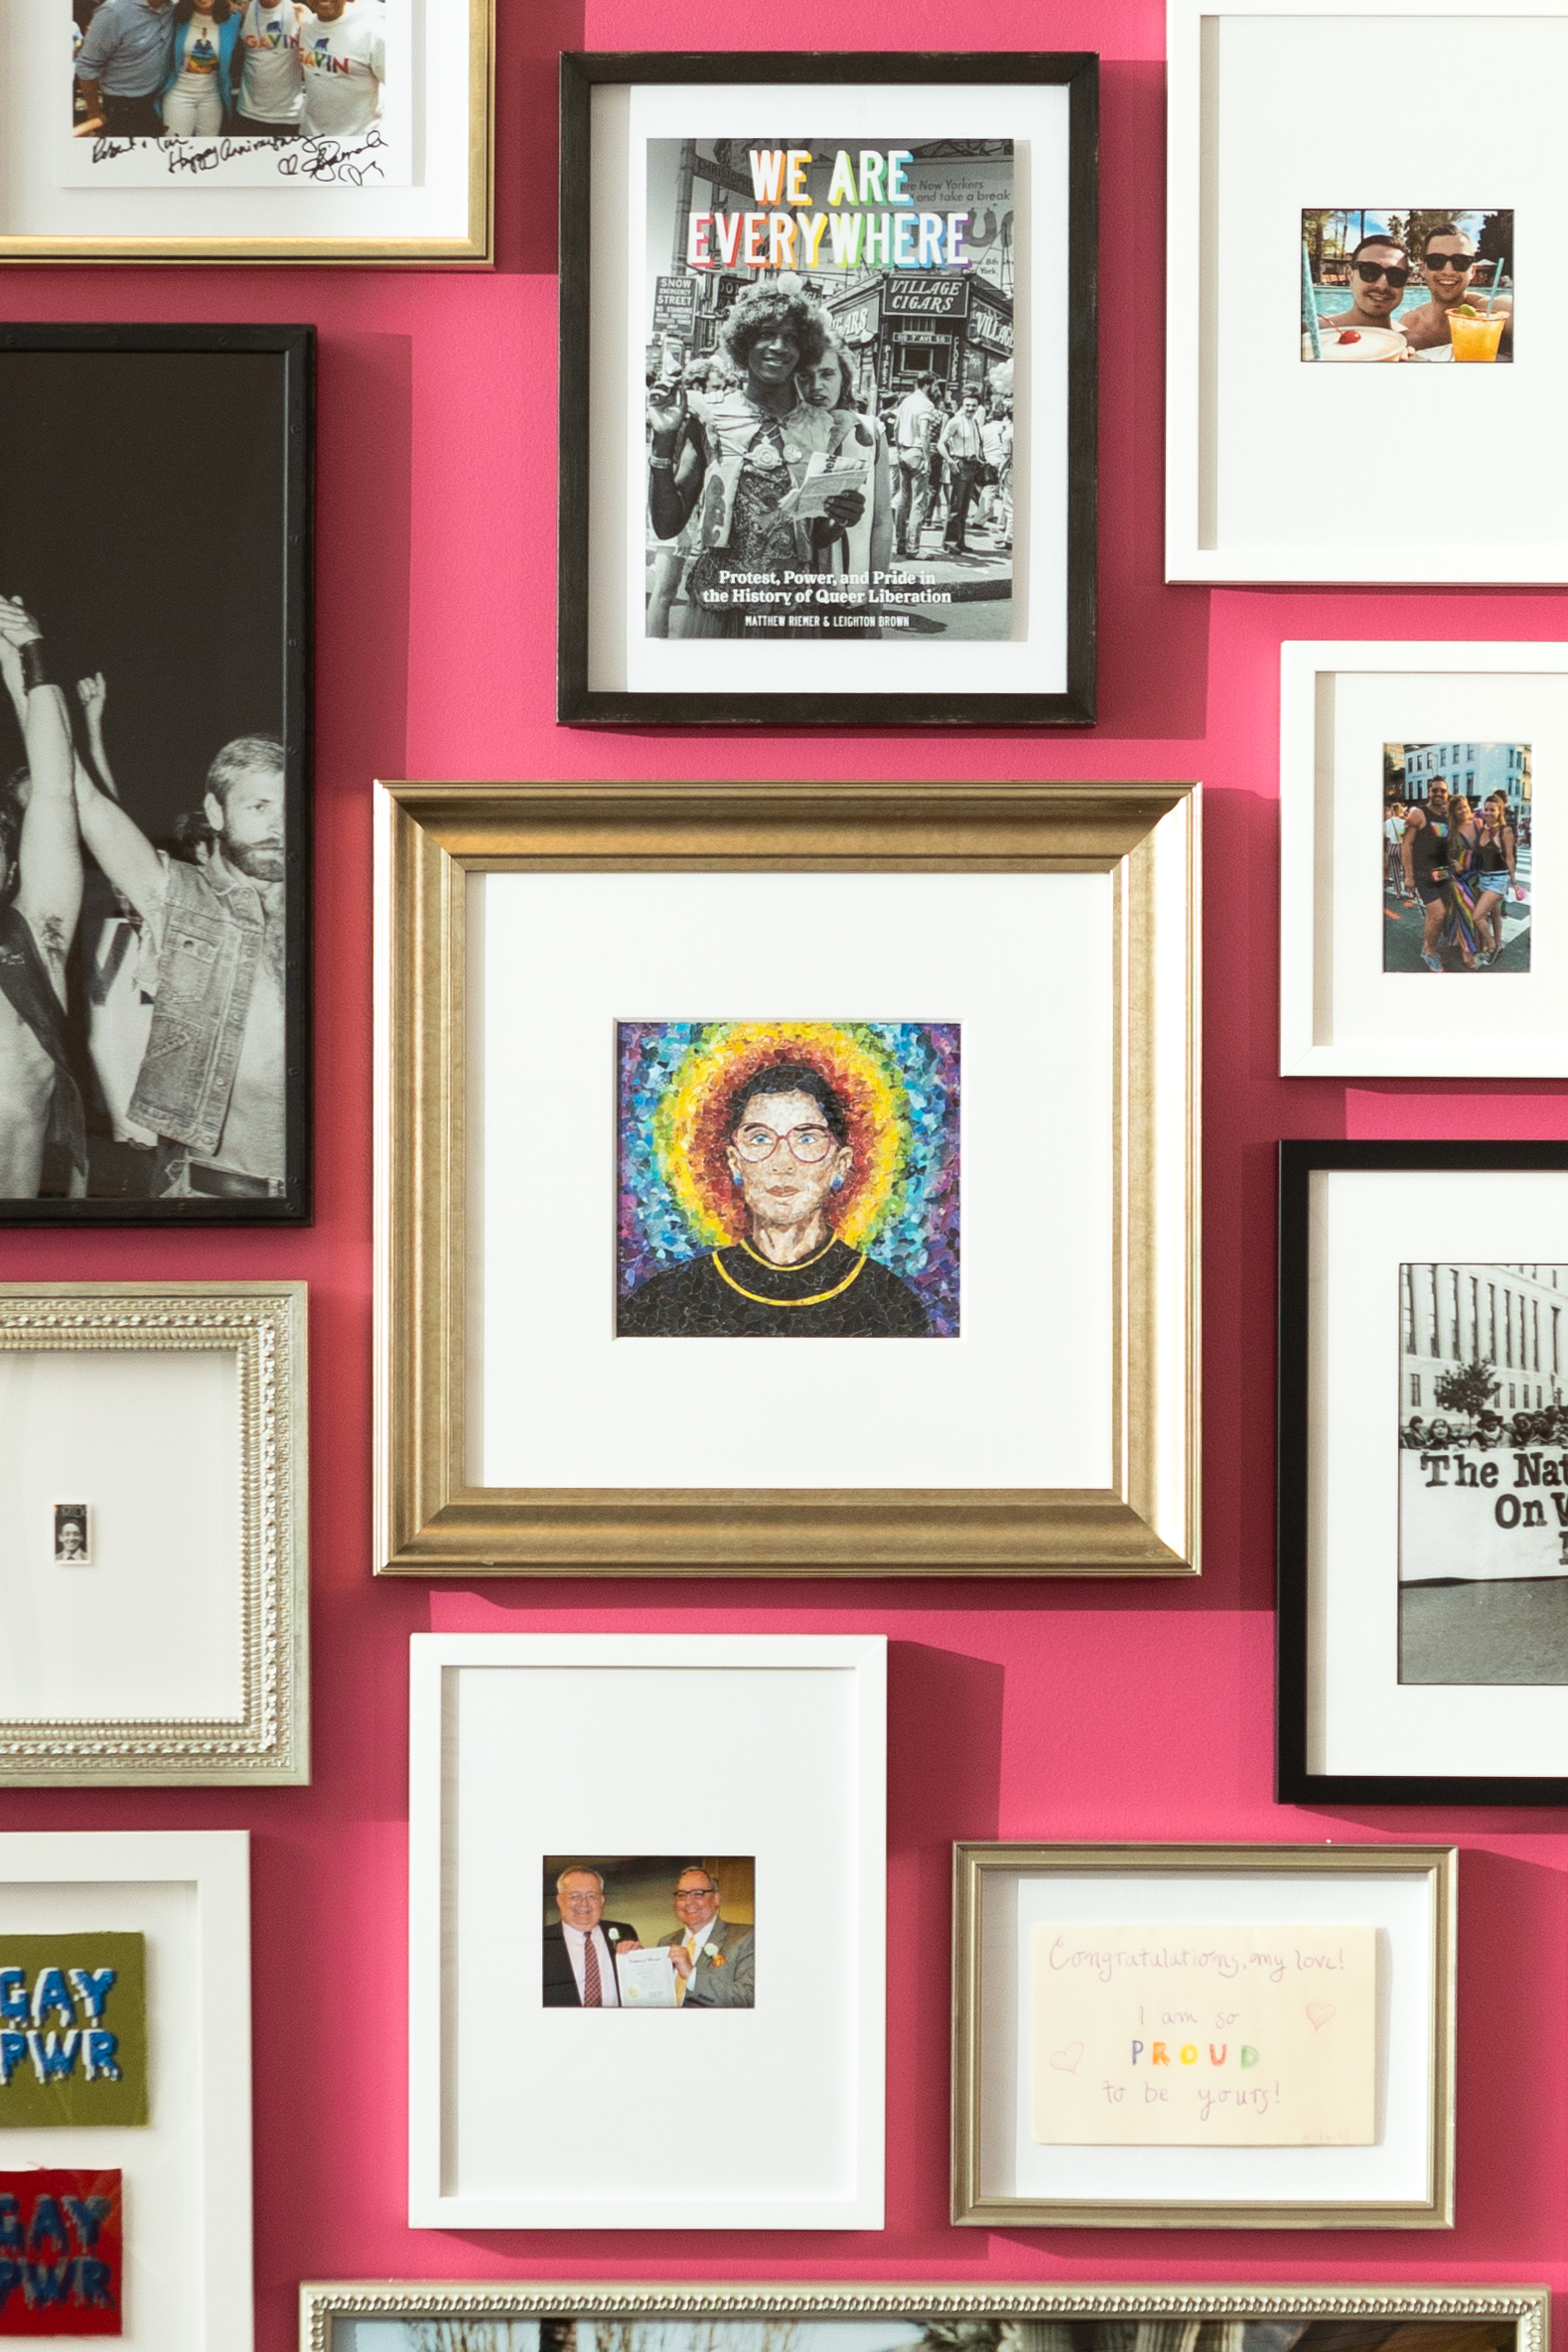 The wall features 60 photos and mementos that highlight personal stories of love, compassion, and the fight for equality. (Image: Courtesy Framebridge)